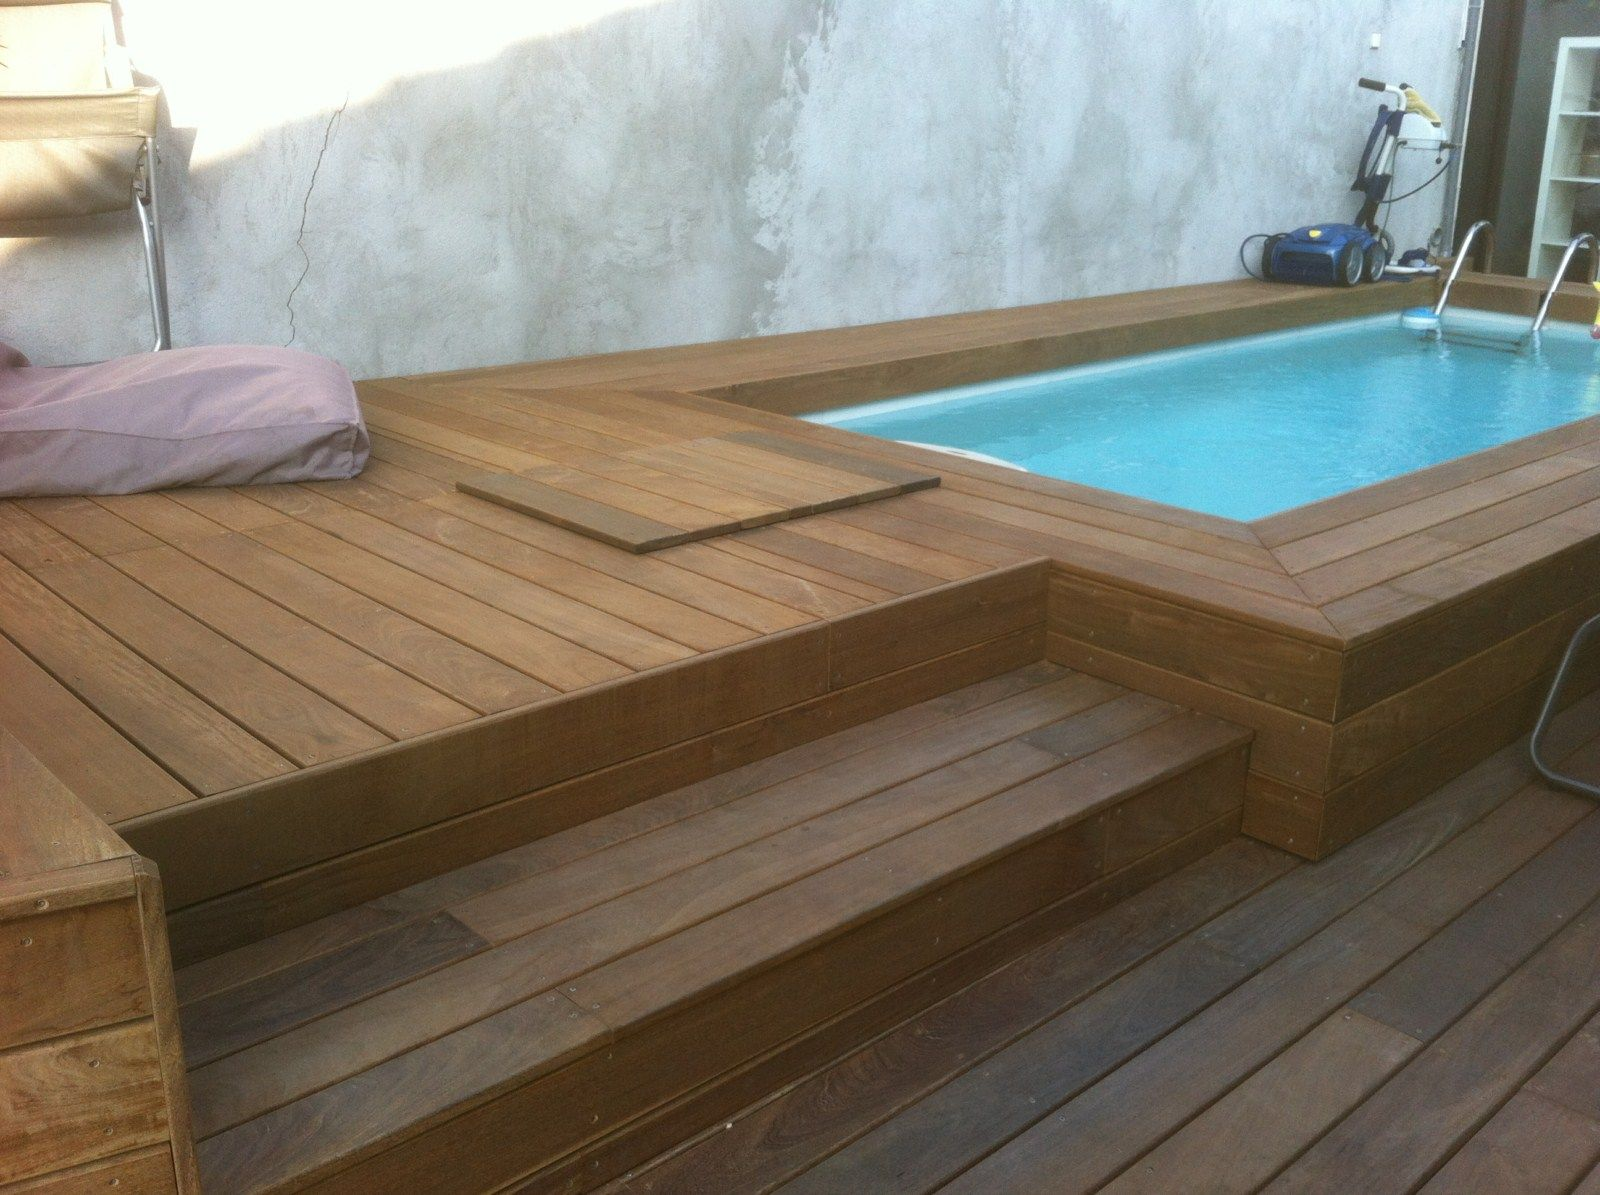 tour de piscine en bois exotique ipe marseille piscine hors sol pinterest terrasses. Black Bedroom Furniture Sets. Home Design Ideas